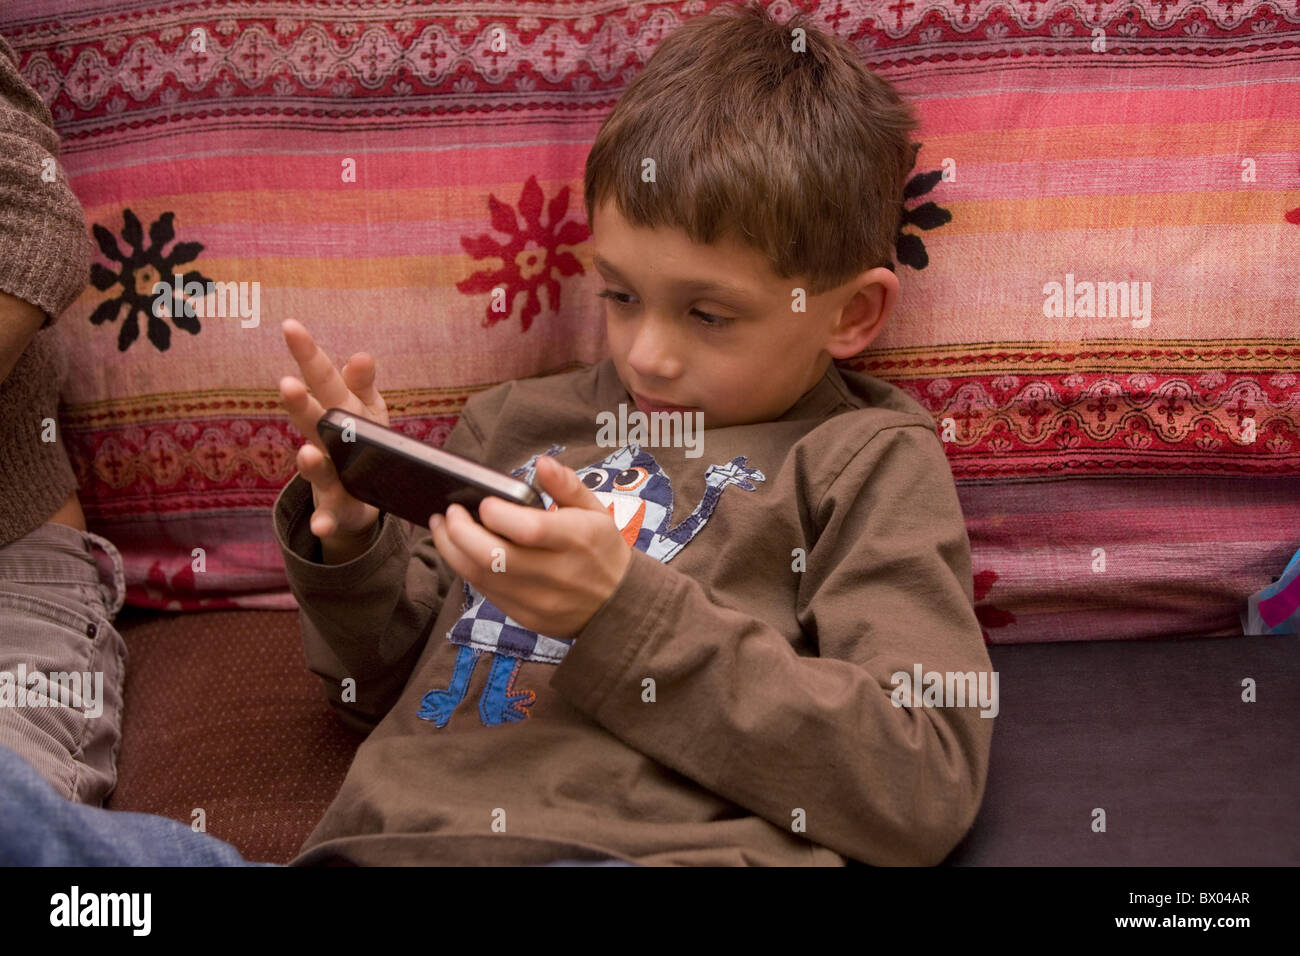 Seven year old boy plays a game on his dad's iPhone. - Stock Image